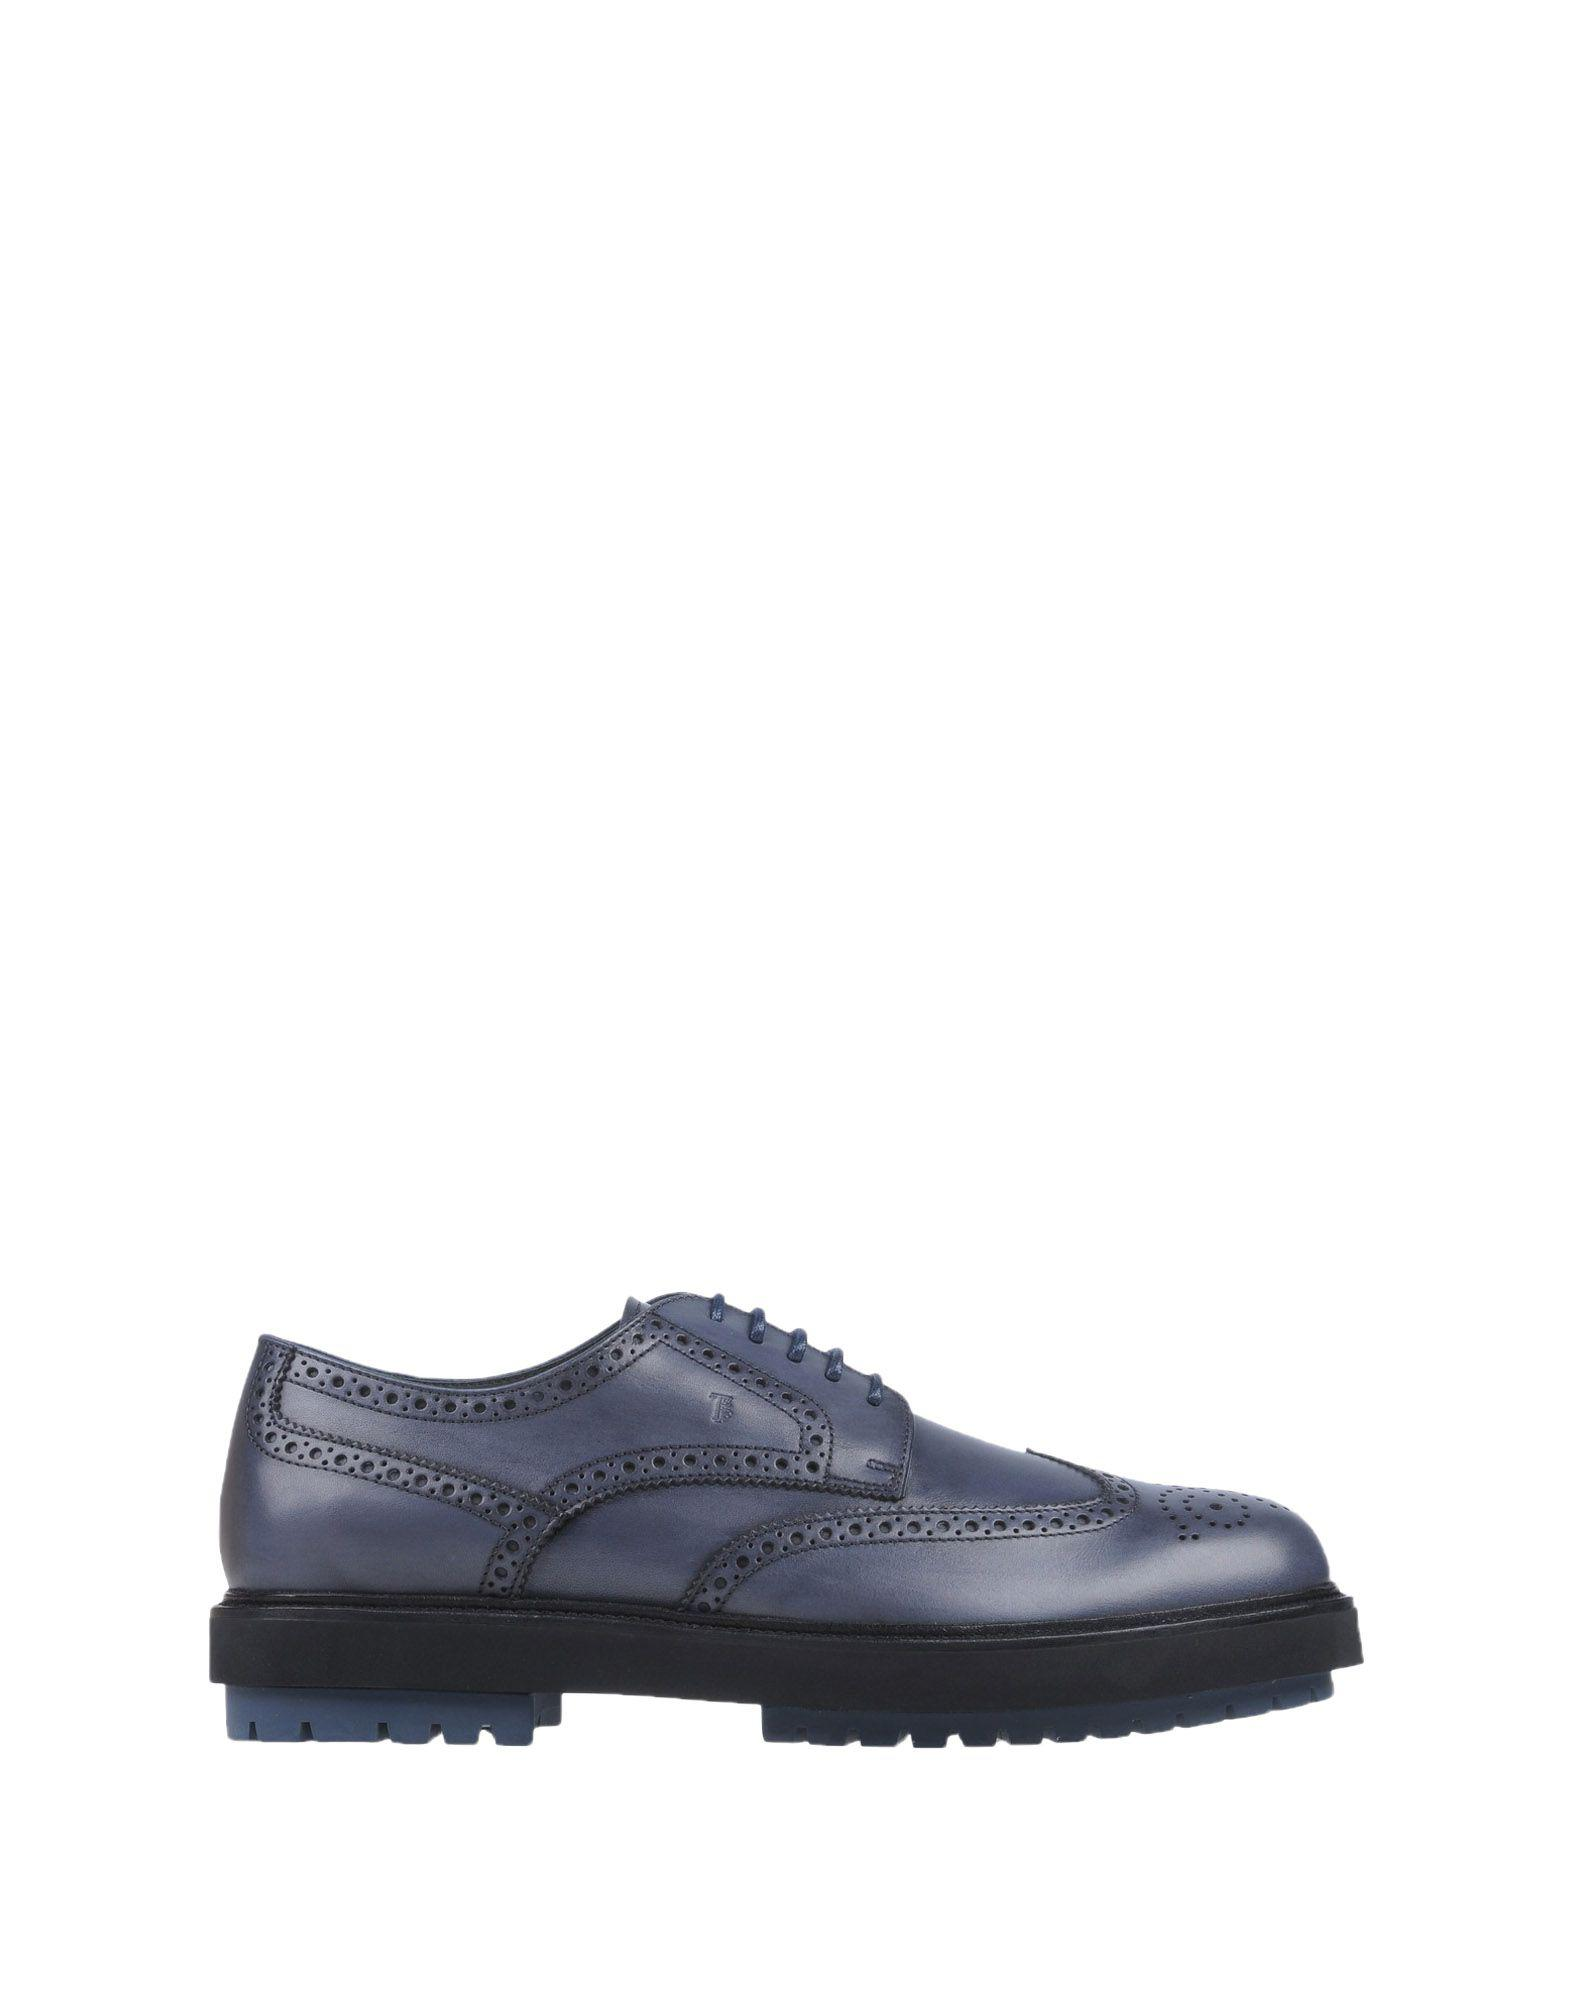 Tod's Leather Lace-up Shoe in Slate Blue (Blue) for Men